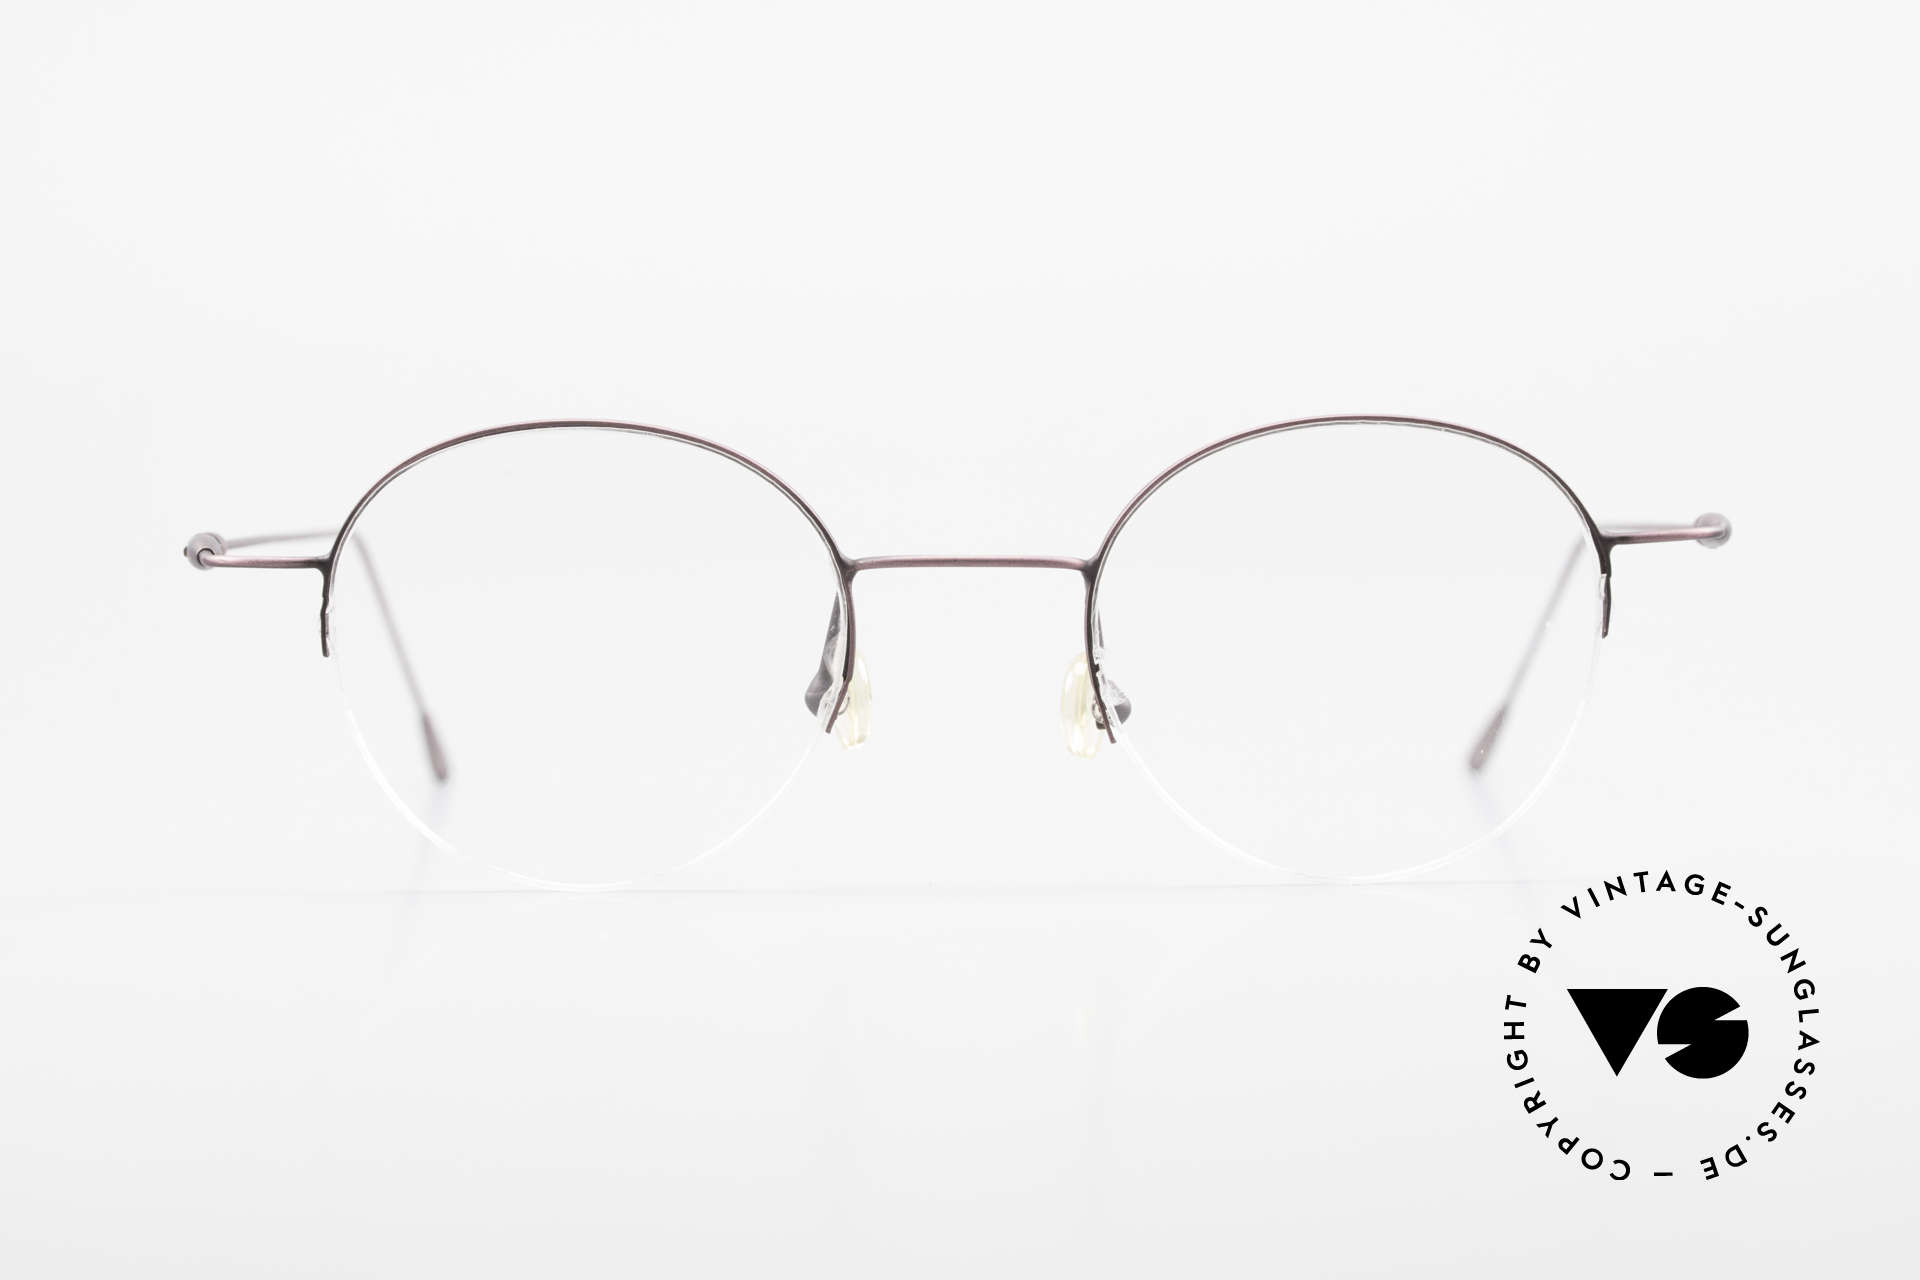 W Proksch's M61/12 Minimalist Semi Rimless Frame, back then, produced by Wolfgang Proksch himself, Made for Men and Women